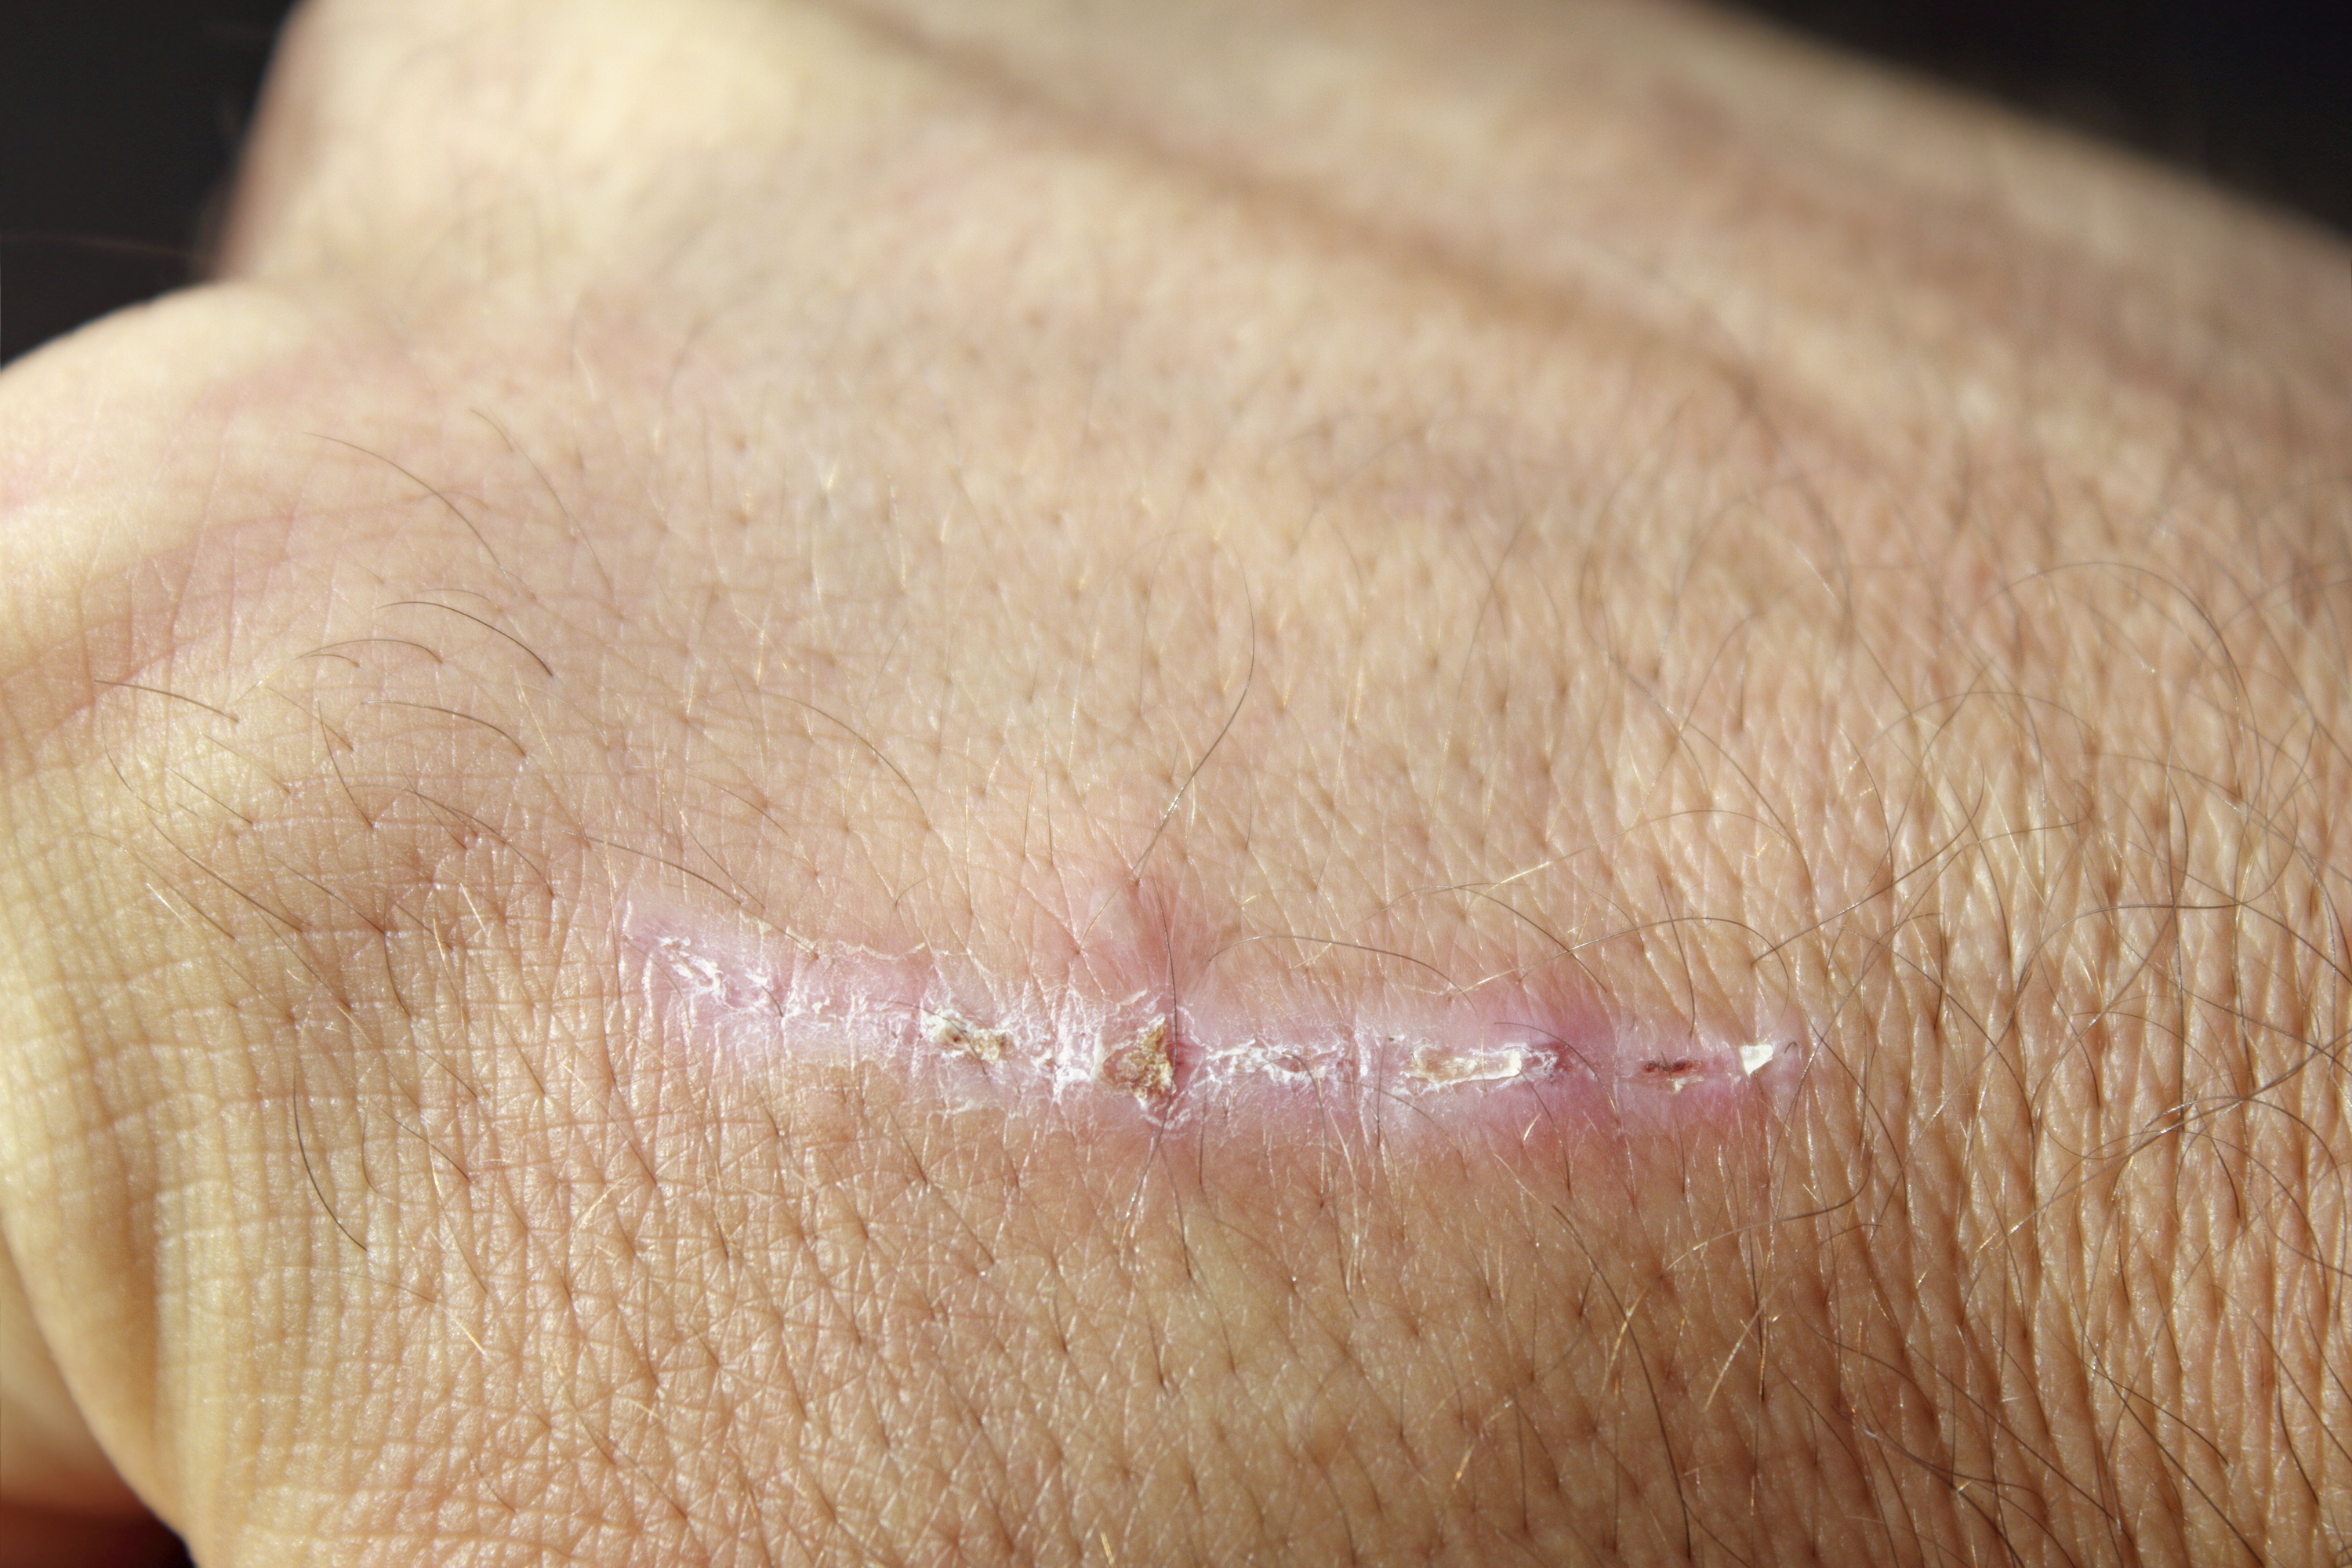 How to Remove Plantar Warts With Tweezers